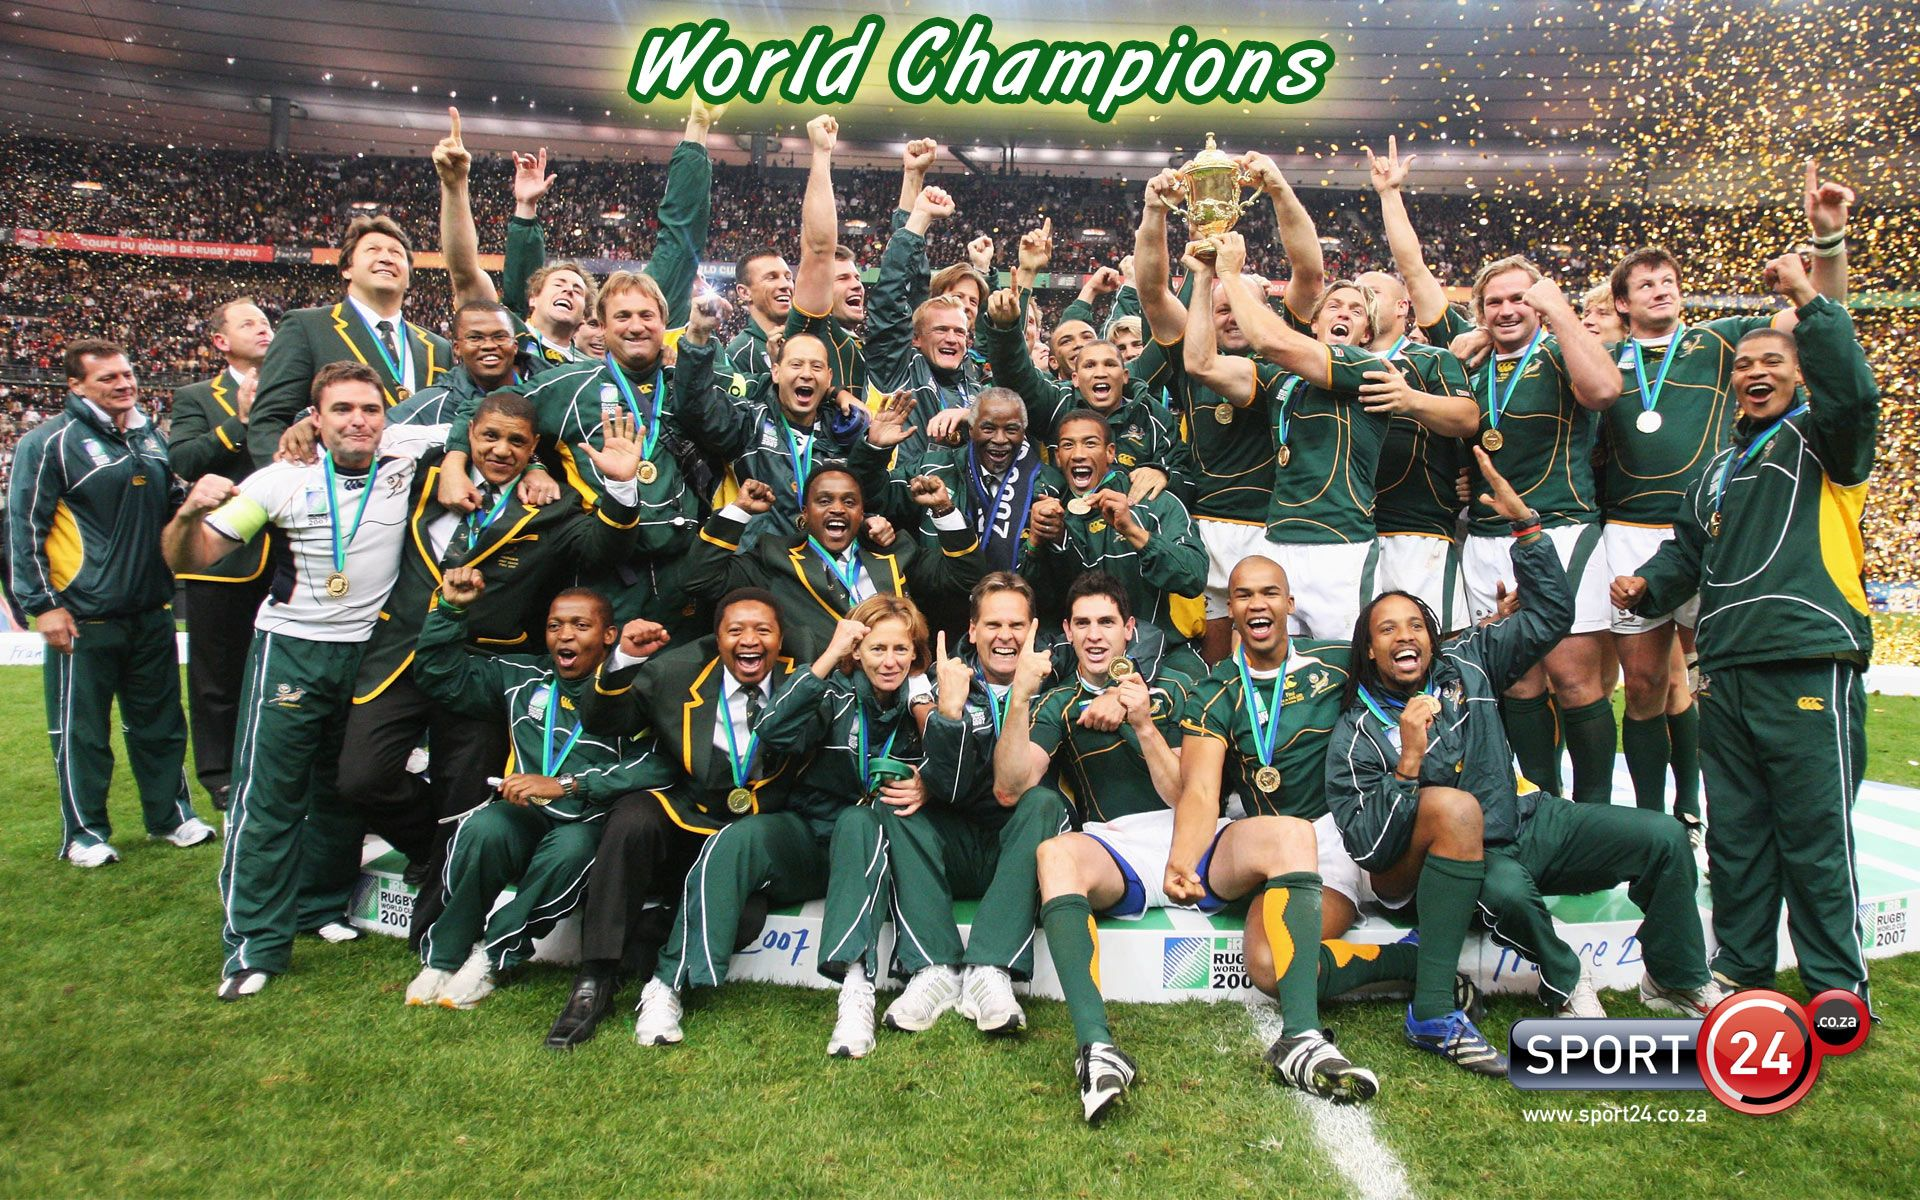 Rwc Champions Sport24 2015 Rugby World Cup Rugby World Cup Rugby